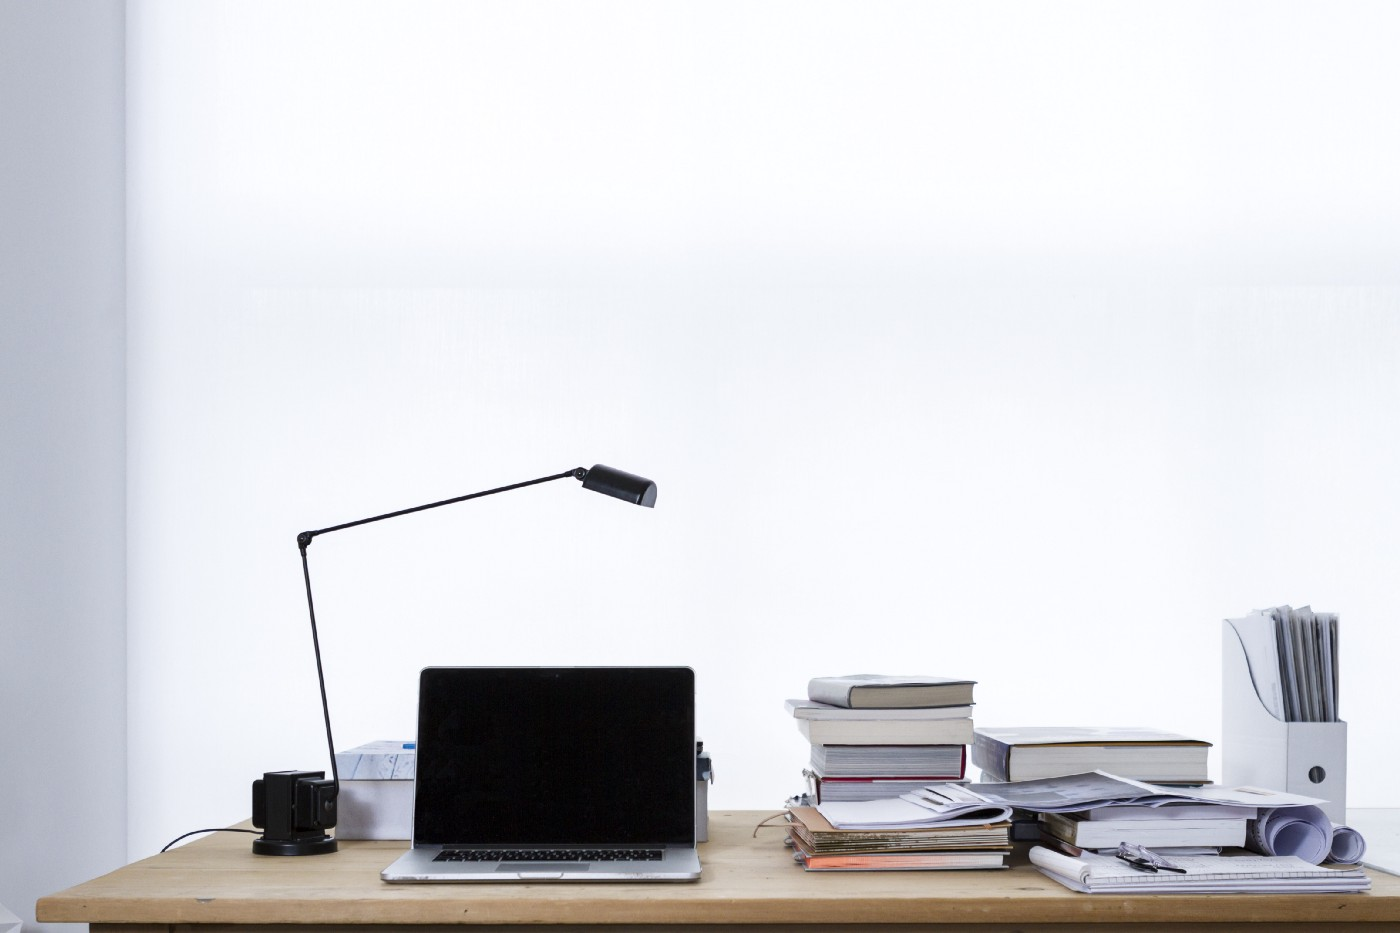 Laptop and modern lamp on a desk with minimalist background.